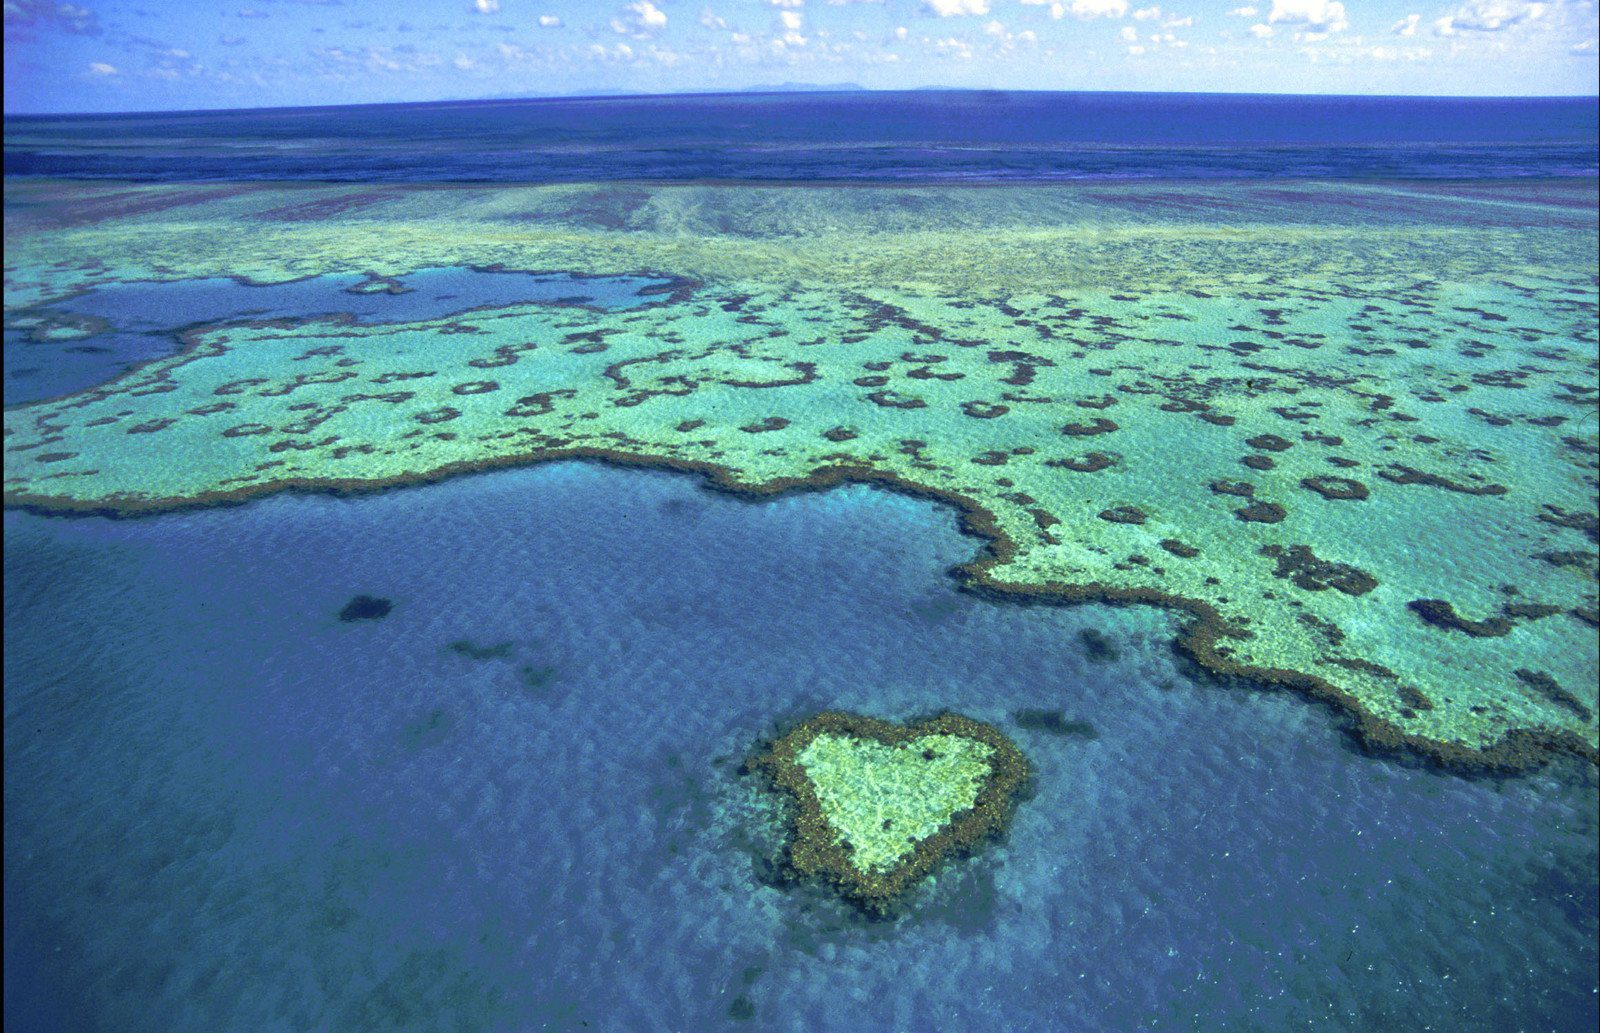 Diving on the Great Barrier Reef Australia